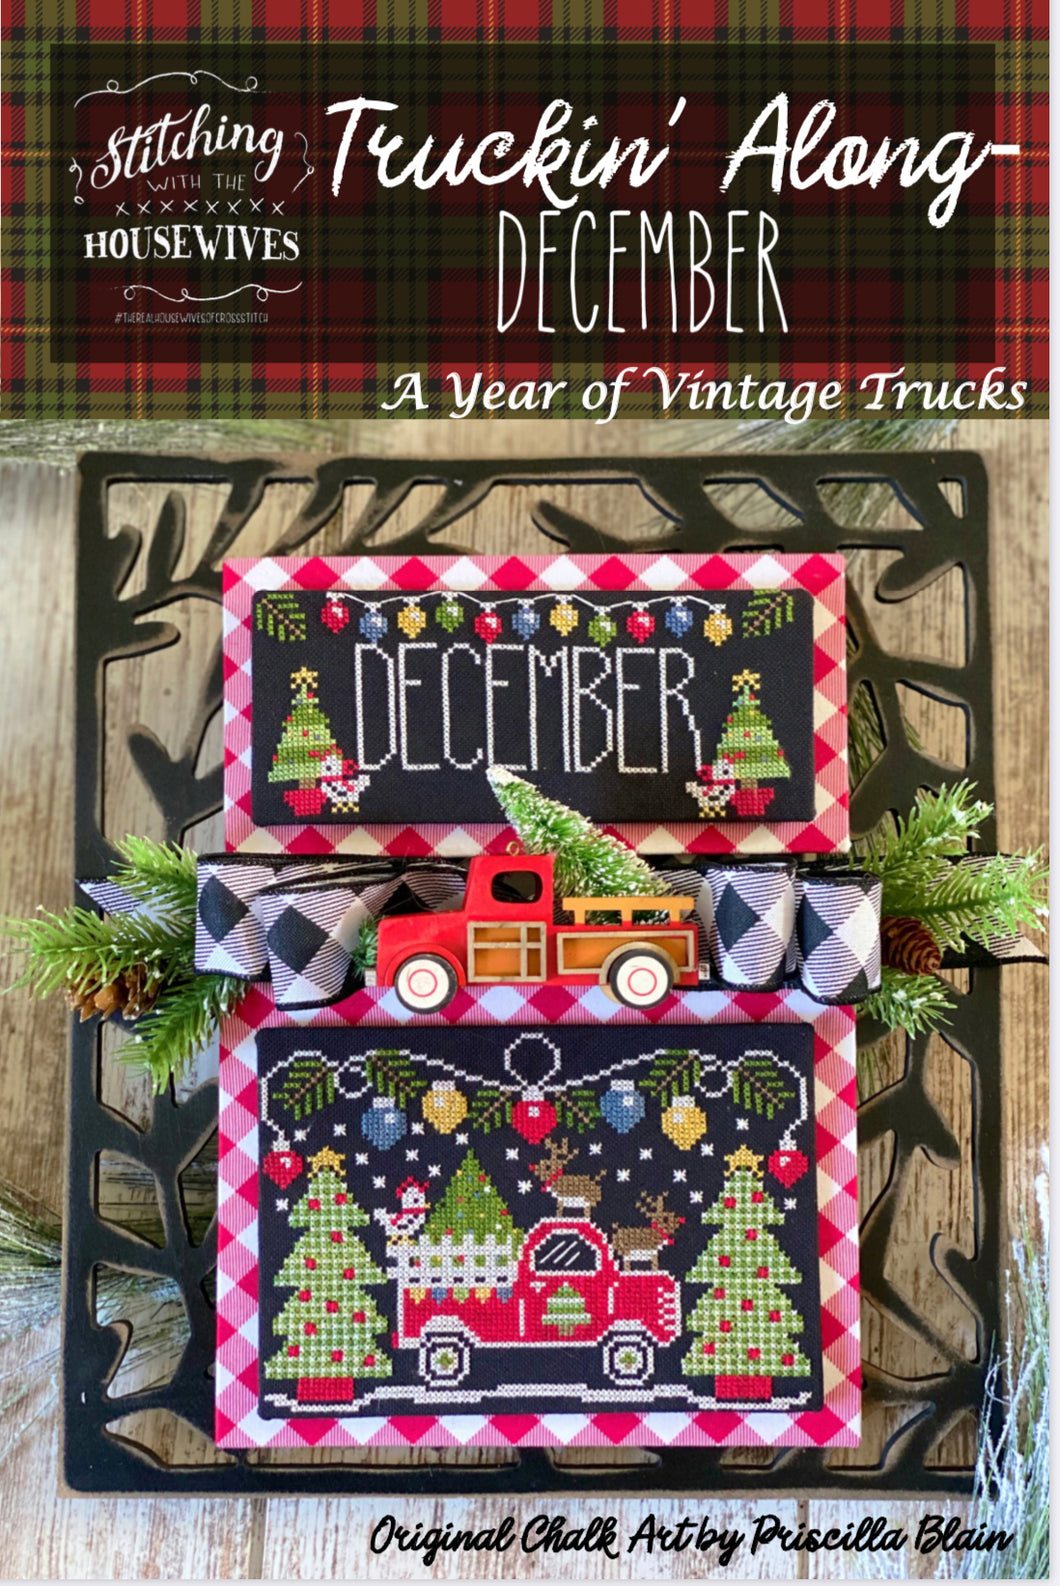 Truckin' Along - December by Stitching With the Housewives